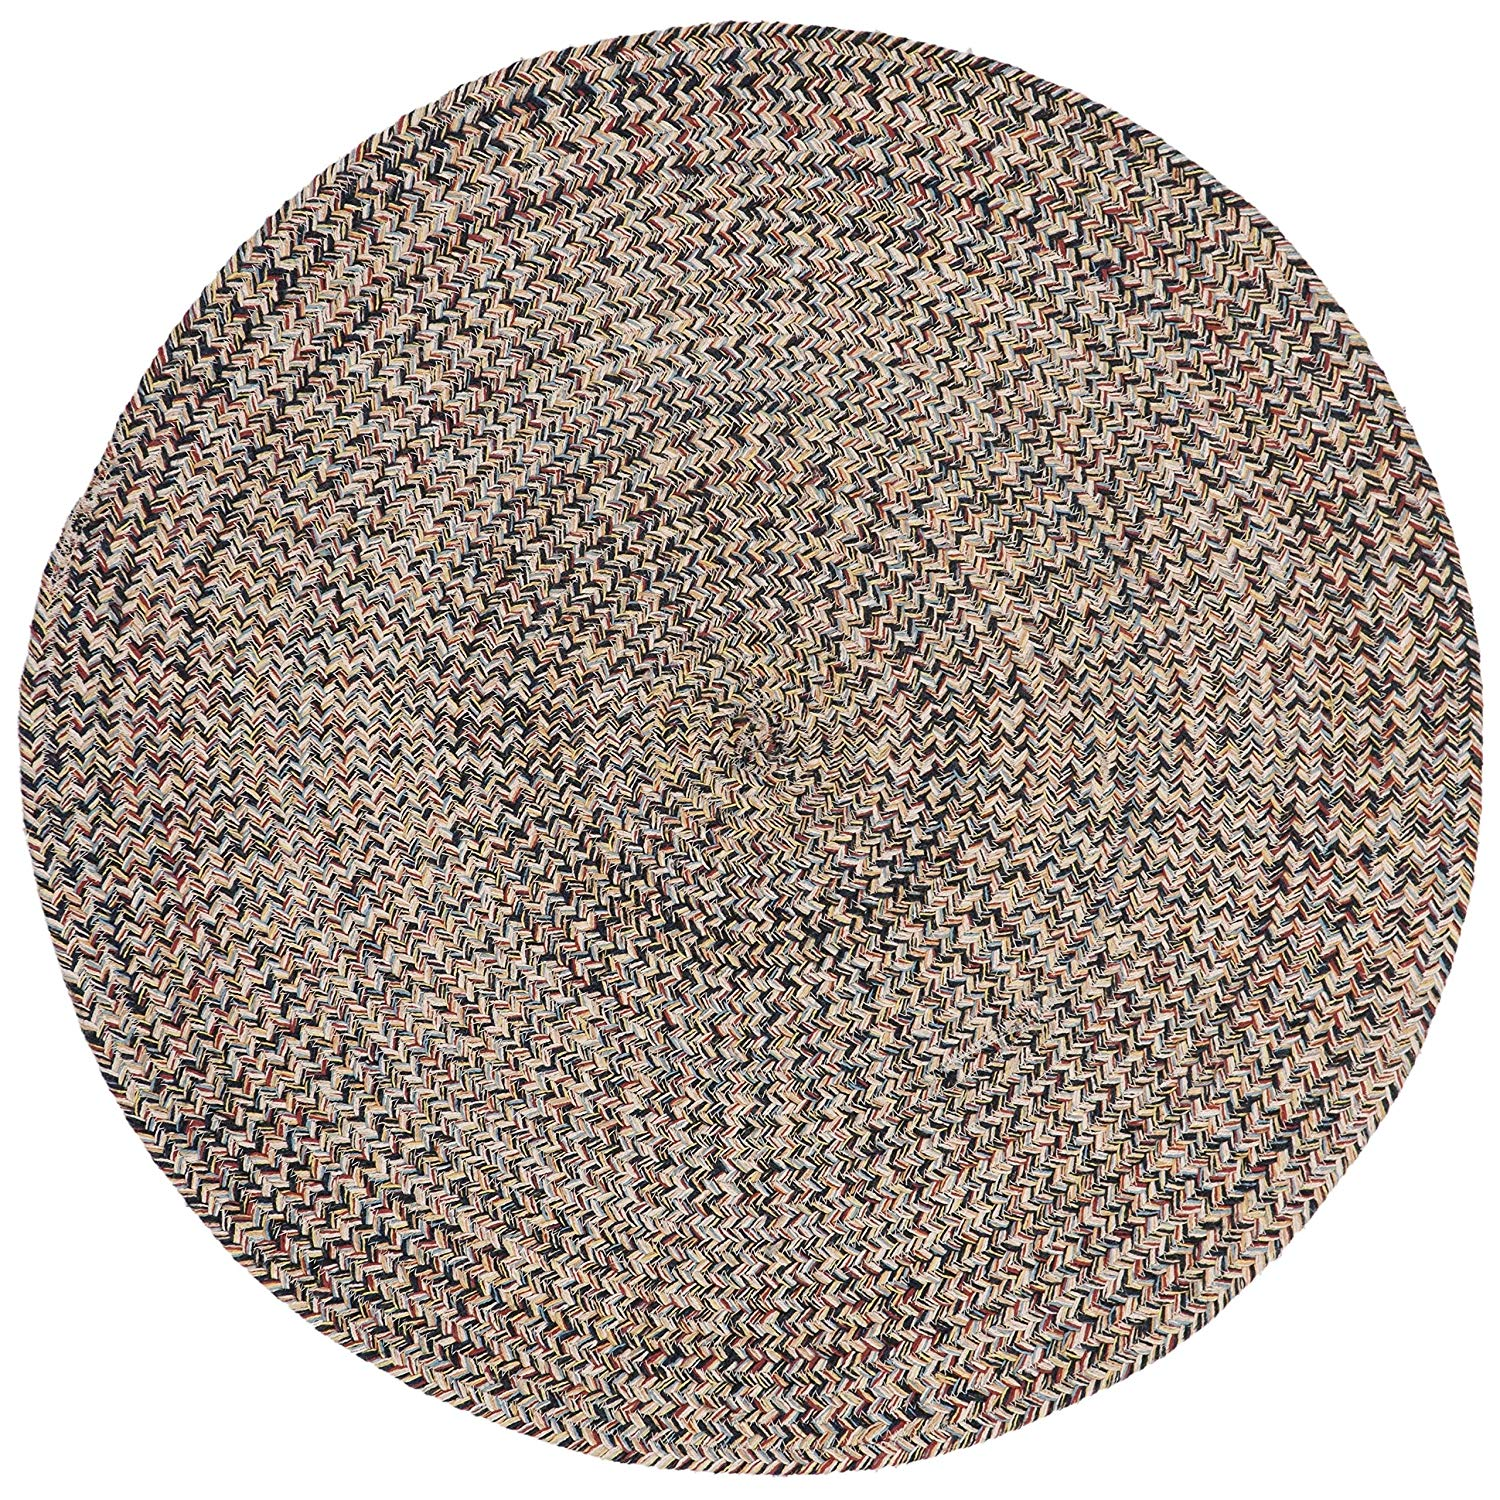 6ft Braided Circular Rug Blue Ivory Red Braid Weave Round Area Rug Color Indoor Carpet Country Farmhouse Theme Circle Floor Mat Bedroom Living Dining